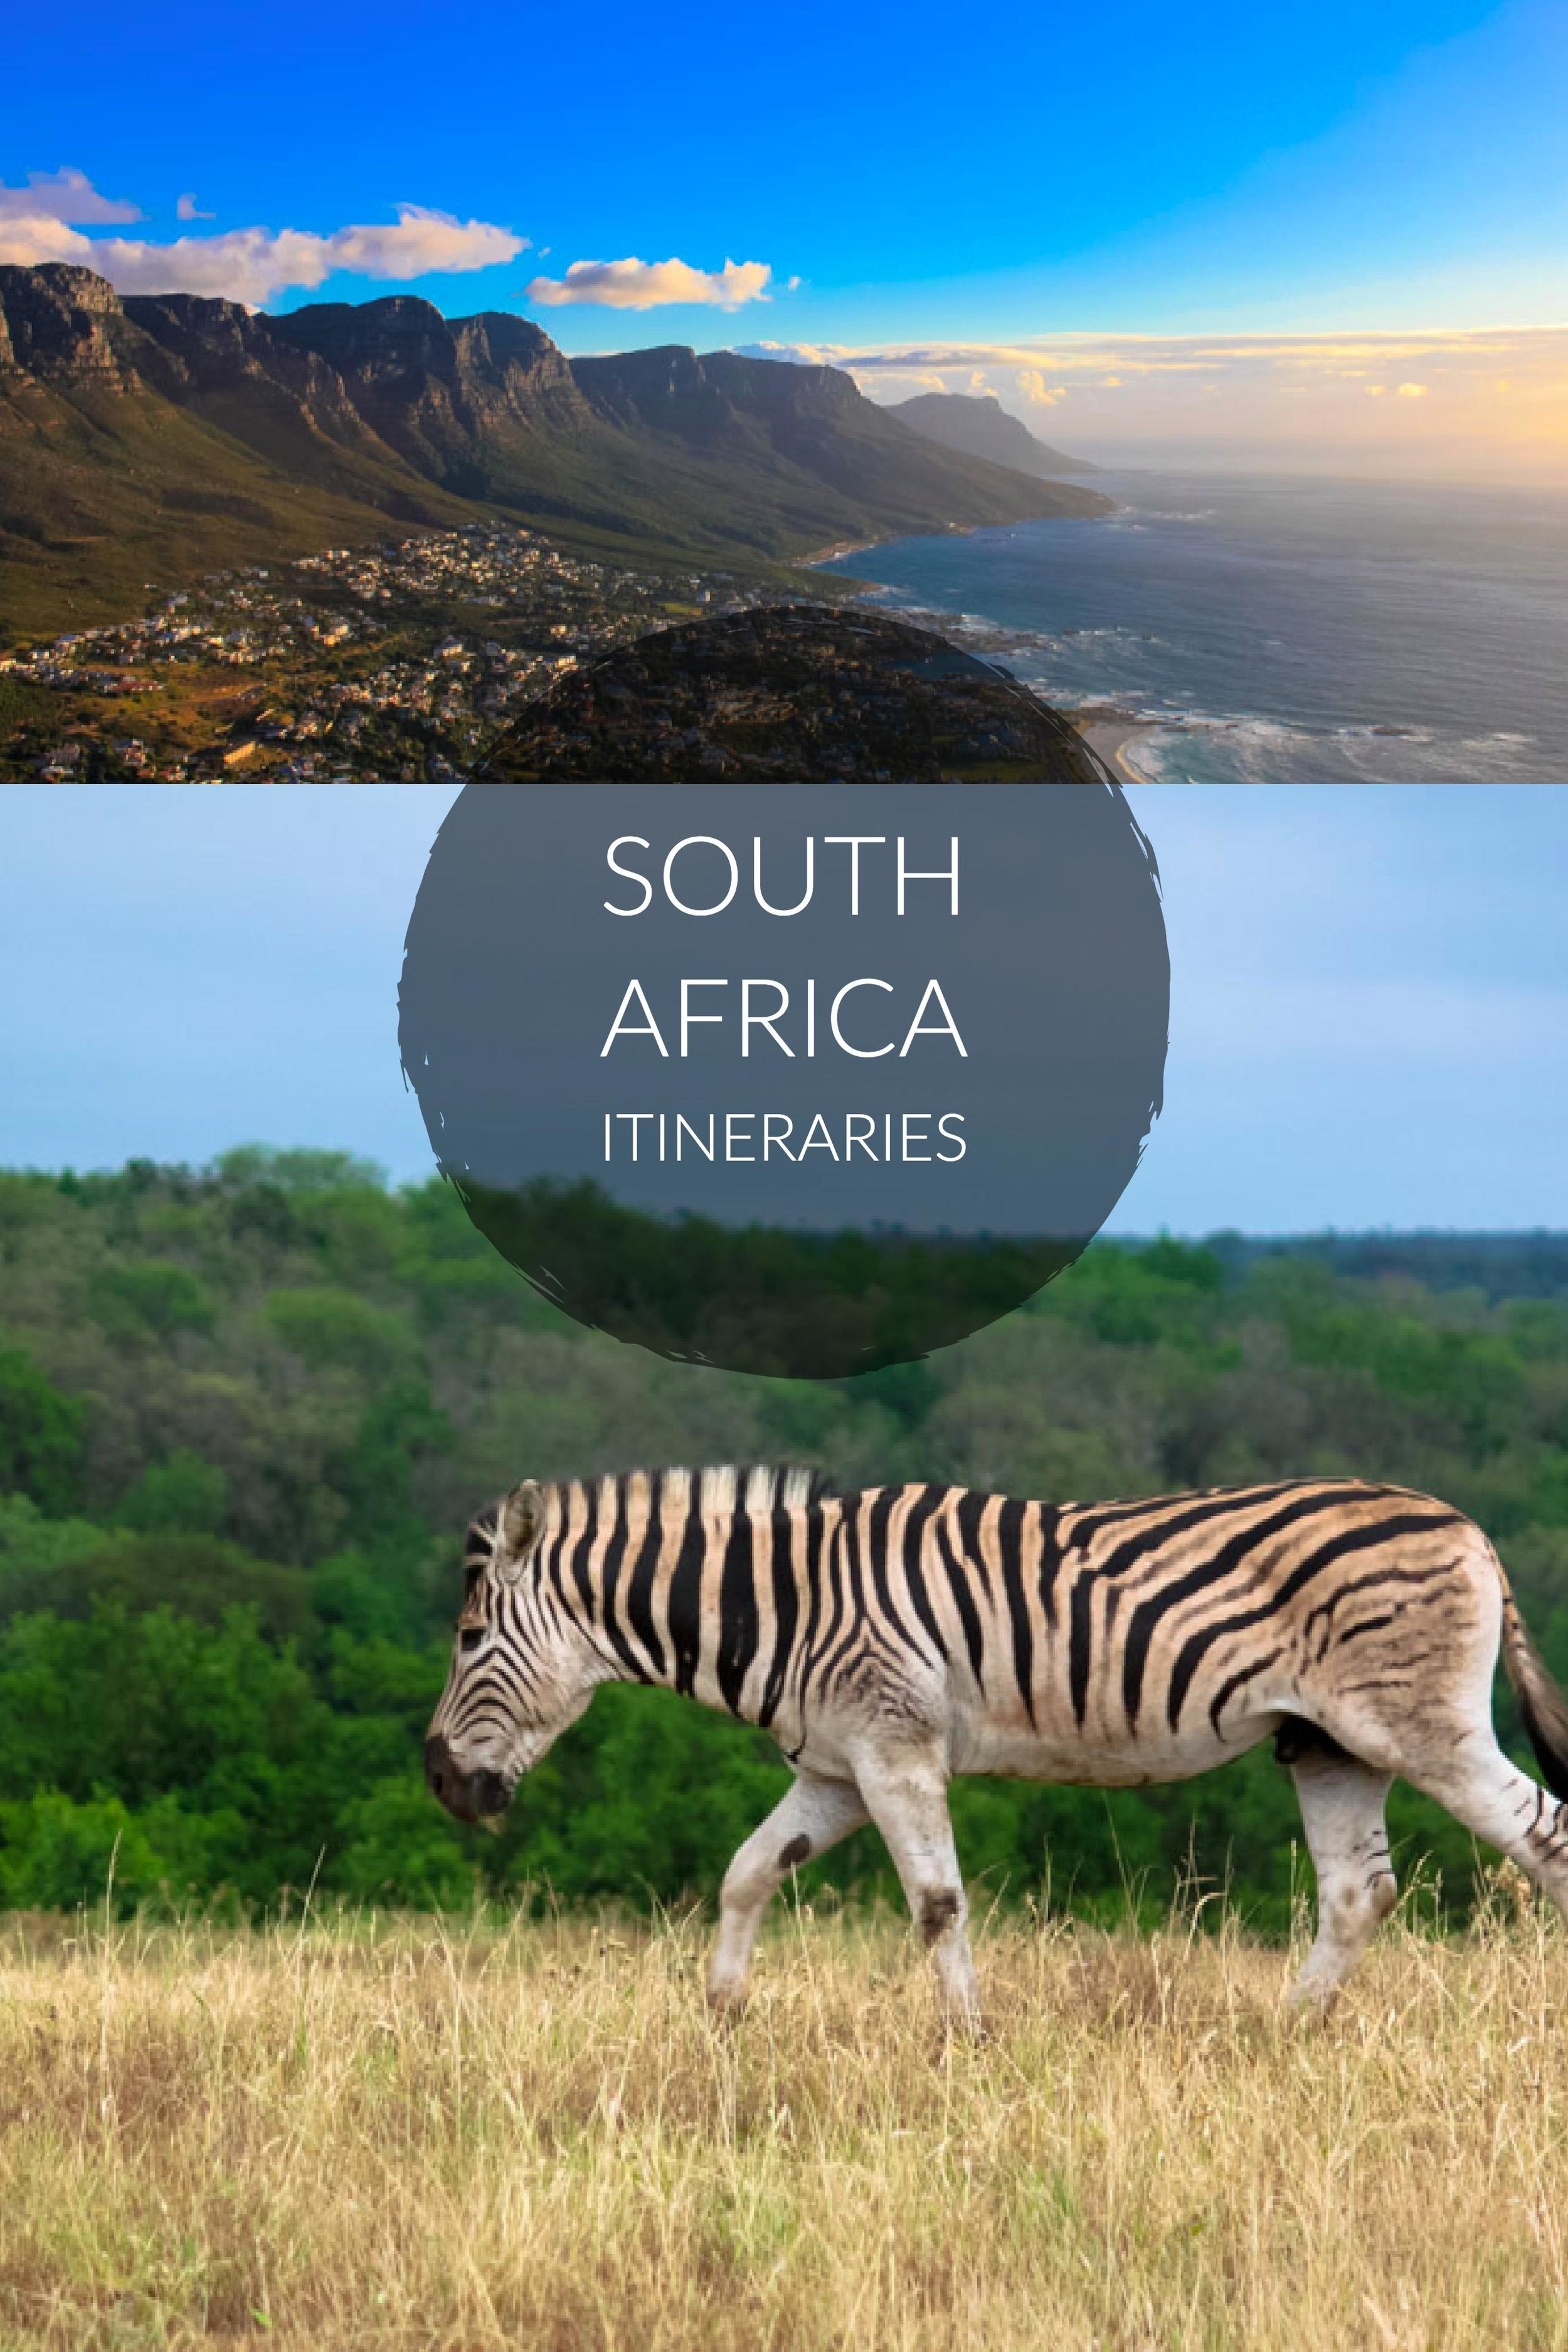 South Africa Itineraries